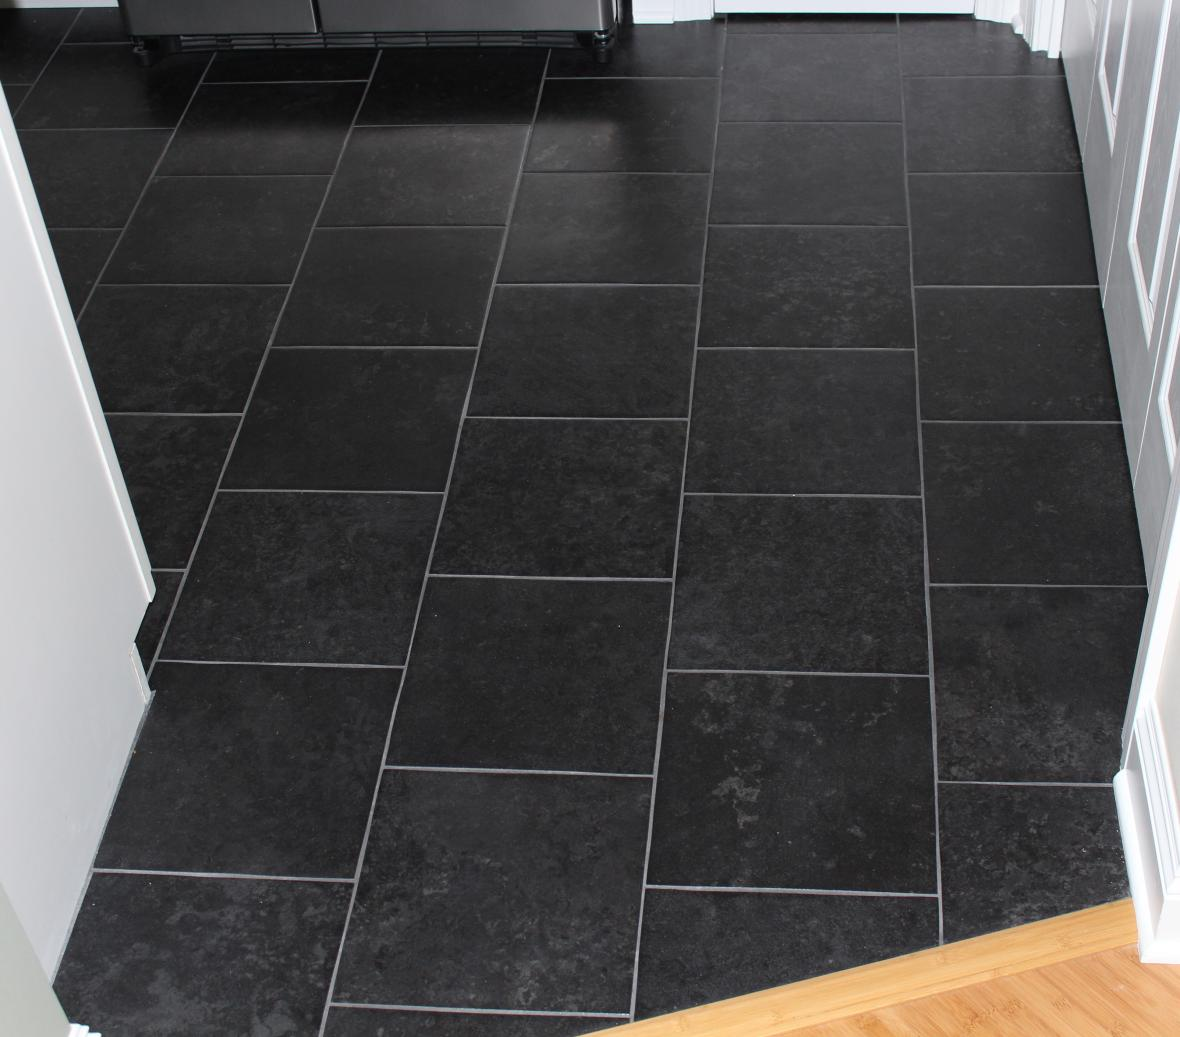 4-black-floor-tiles-glitter-black-ceramic-floor-tiles-300-x-300-black-porcelain-floor-tile-60-x-60cm-black-white-ceramic-floor-tile-black-porcelain-floor-tiles-wickes-black-floor-tile-with-silver